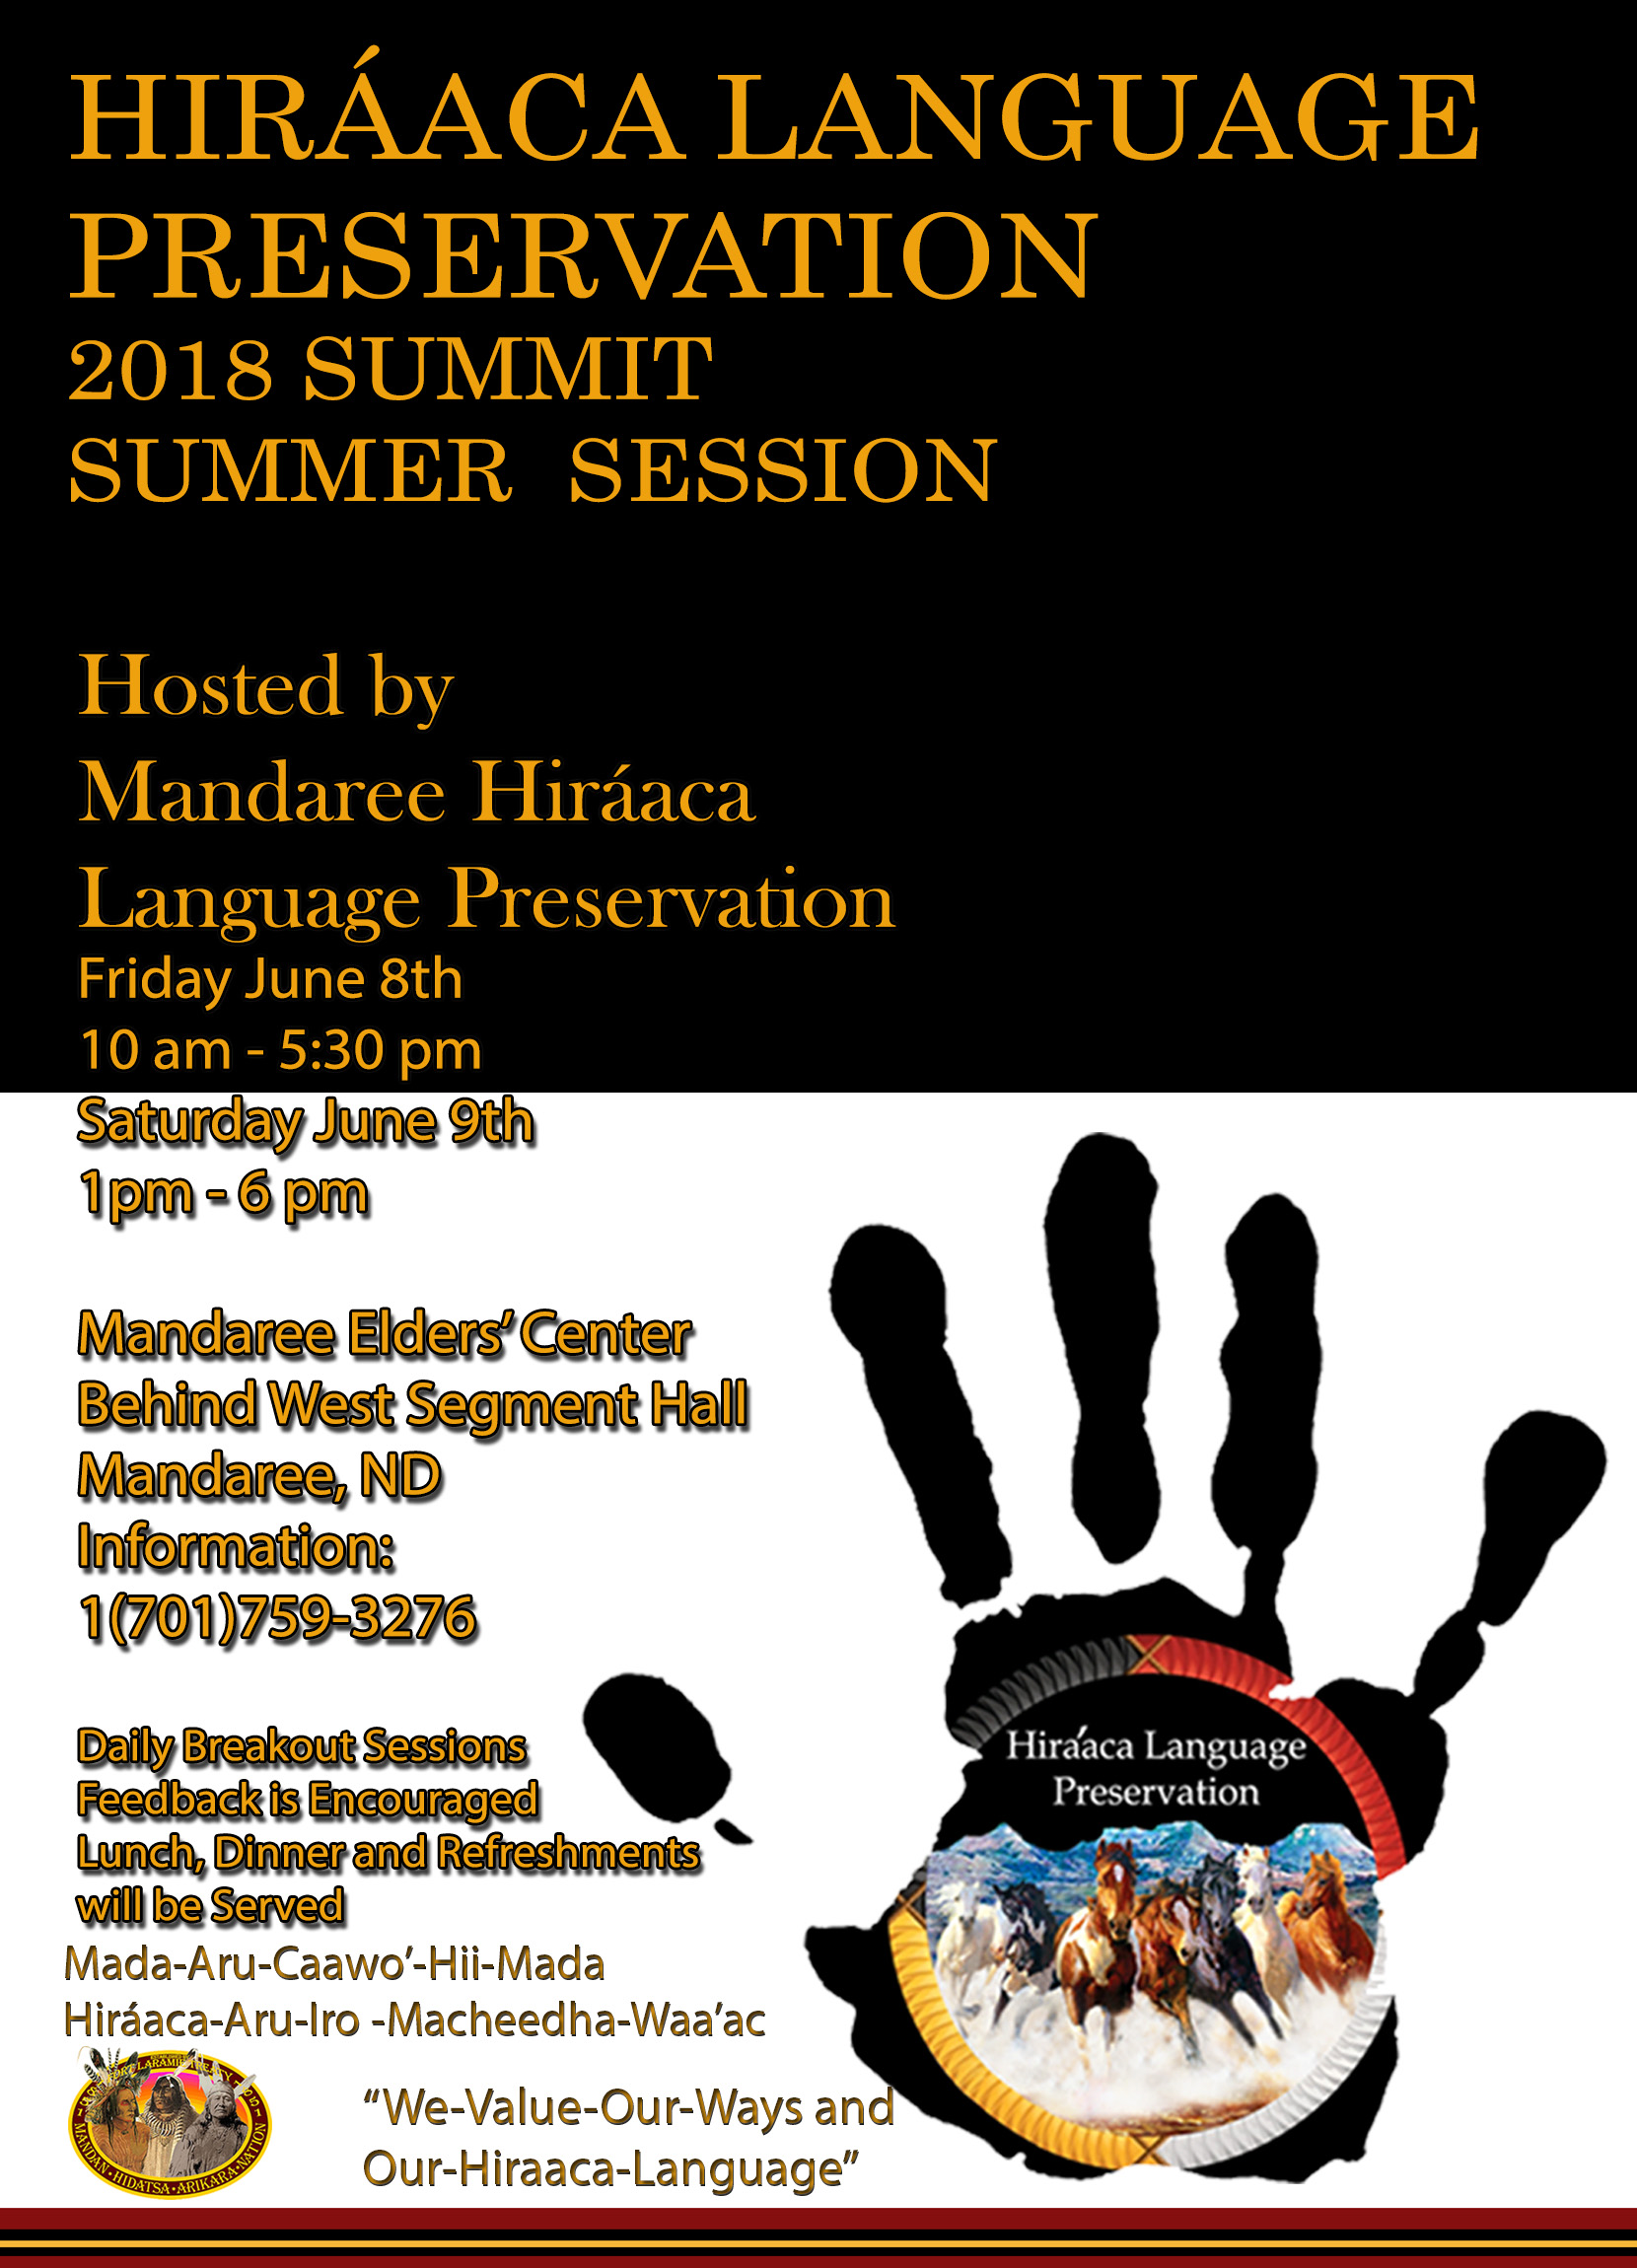 Hiraaca language Preservation 2018 Summit Summer Session.jpg